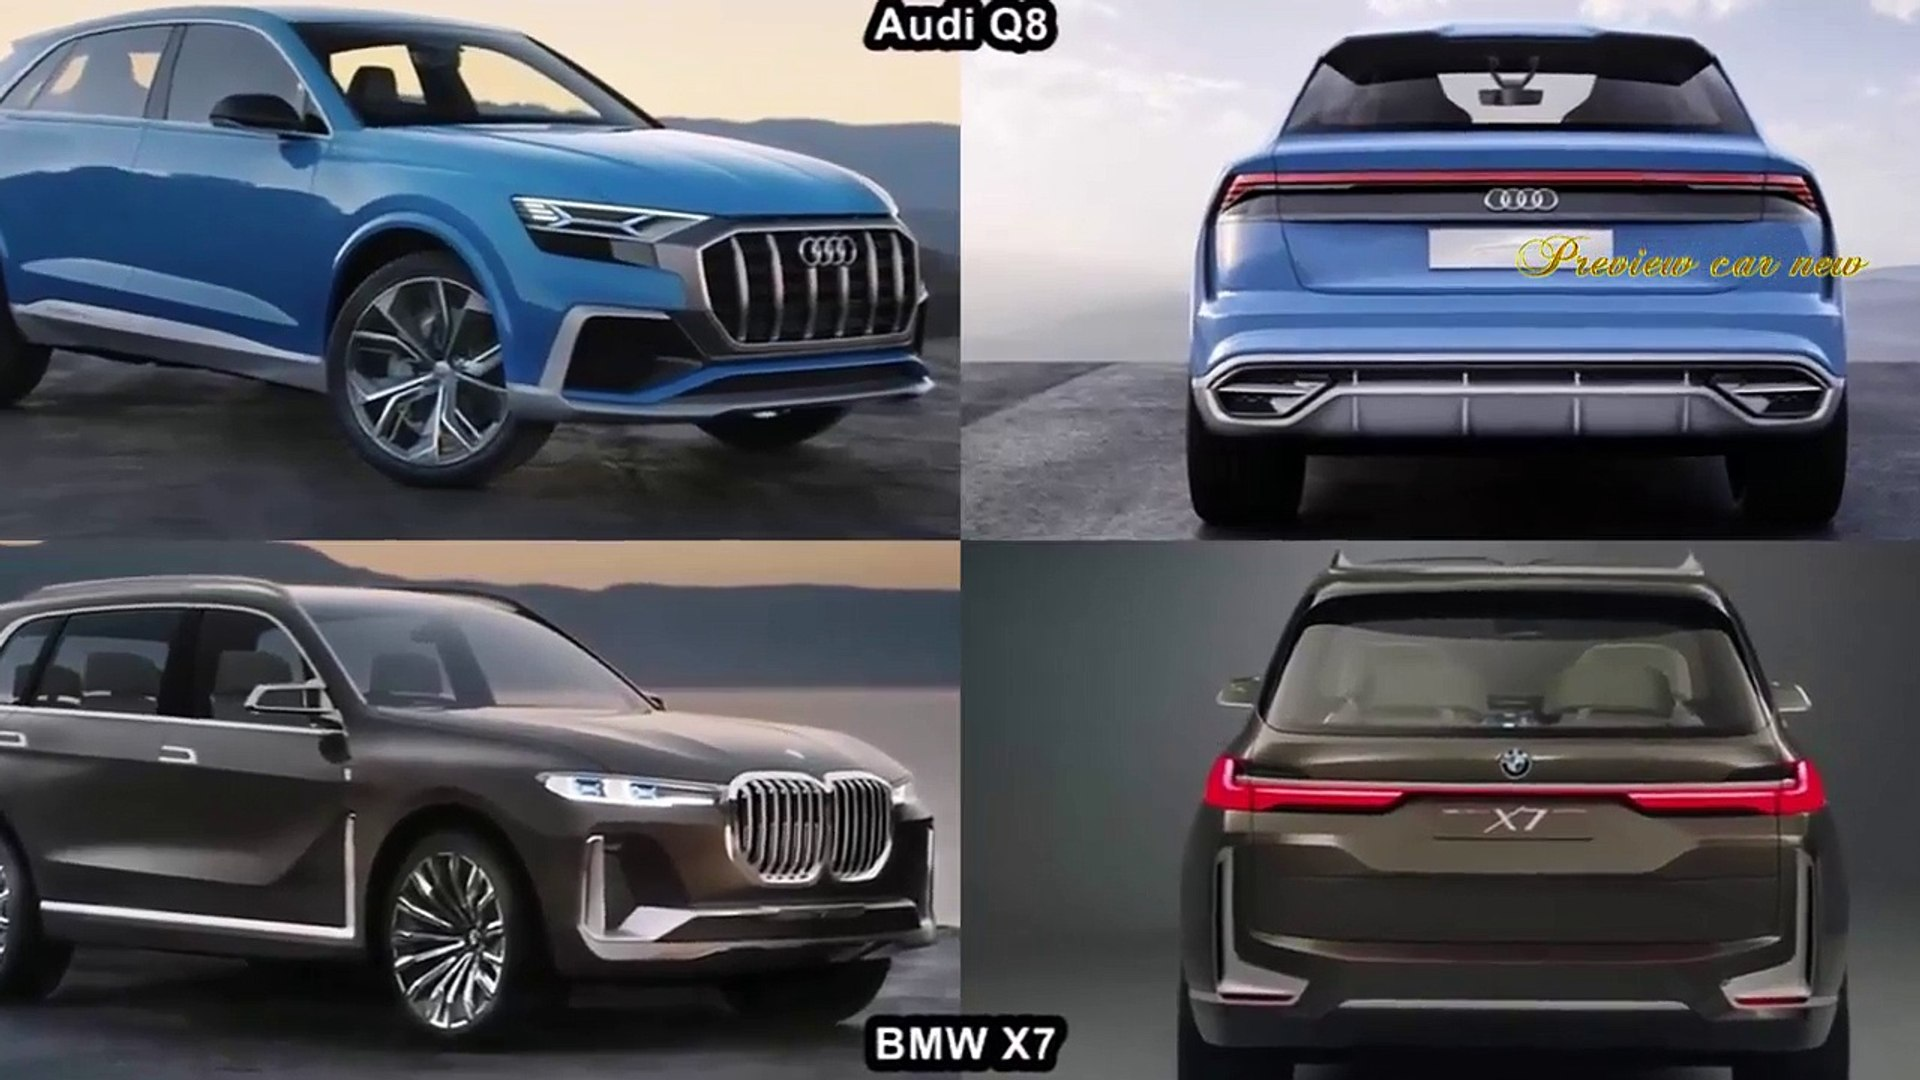 Car And Driver 2019 Audi Q8 Vs 2019 Bmw X7 Review Of Exterior And Interior